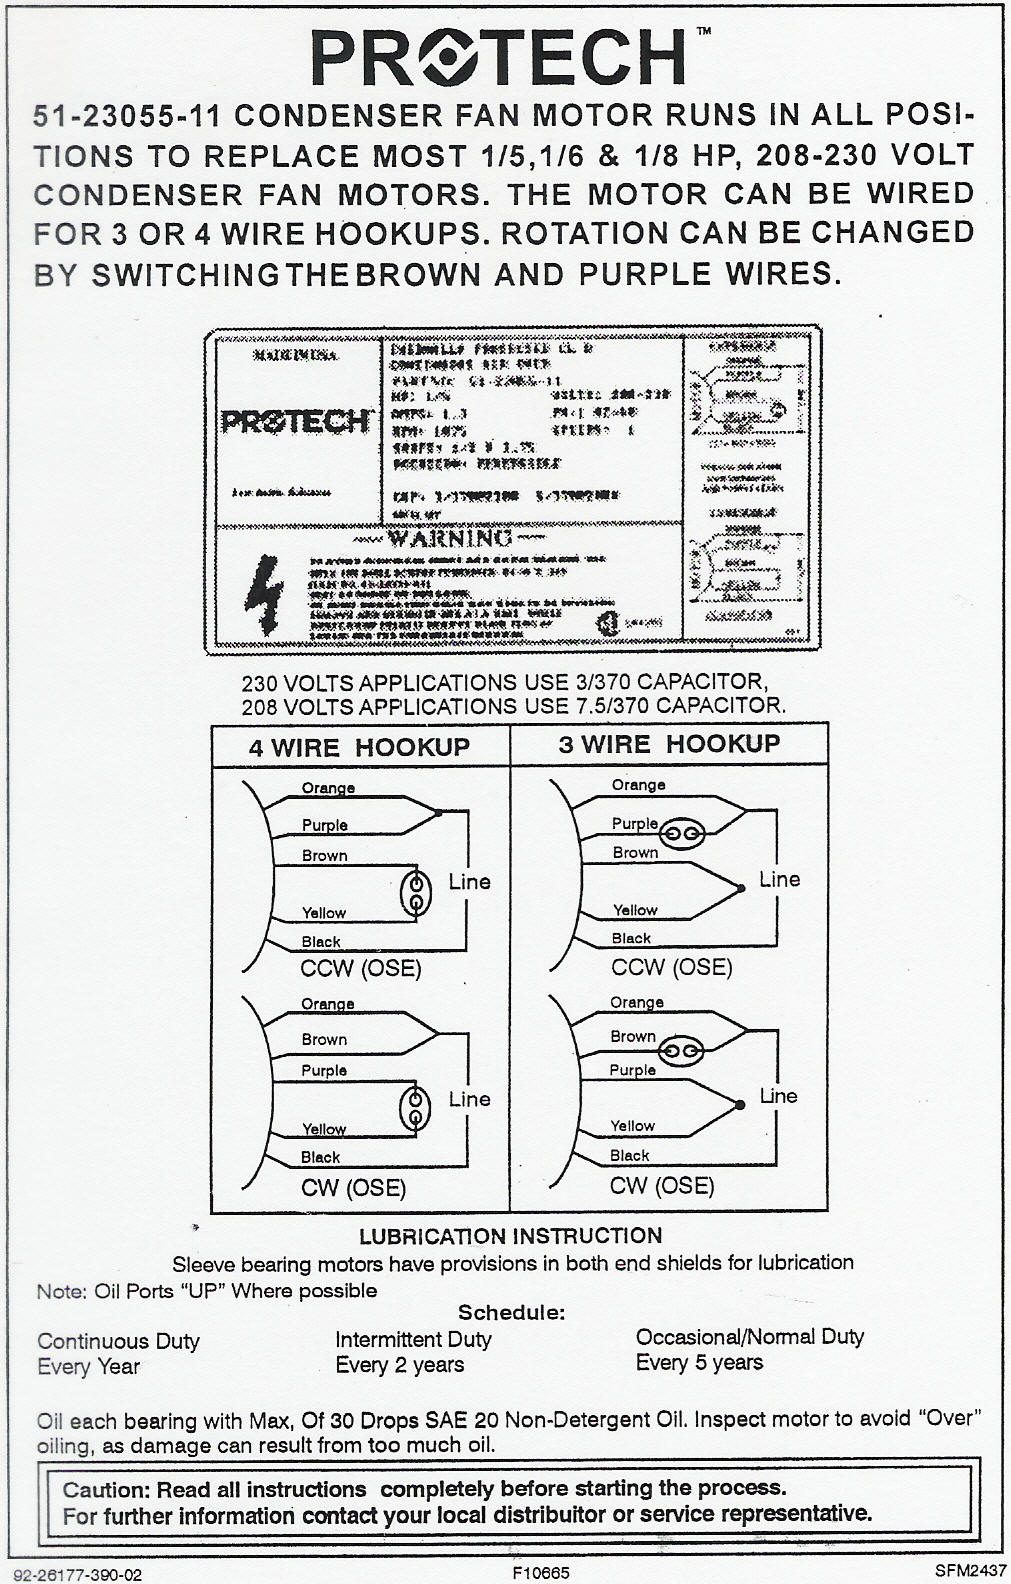 Electric Furnace Wiring Diagram Wesco Rheem Wire Diagramrheem Blower Motor Image Ruud Condenser Fan 51 23055